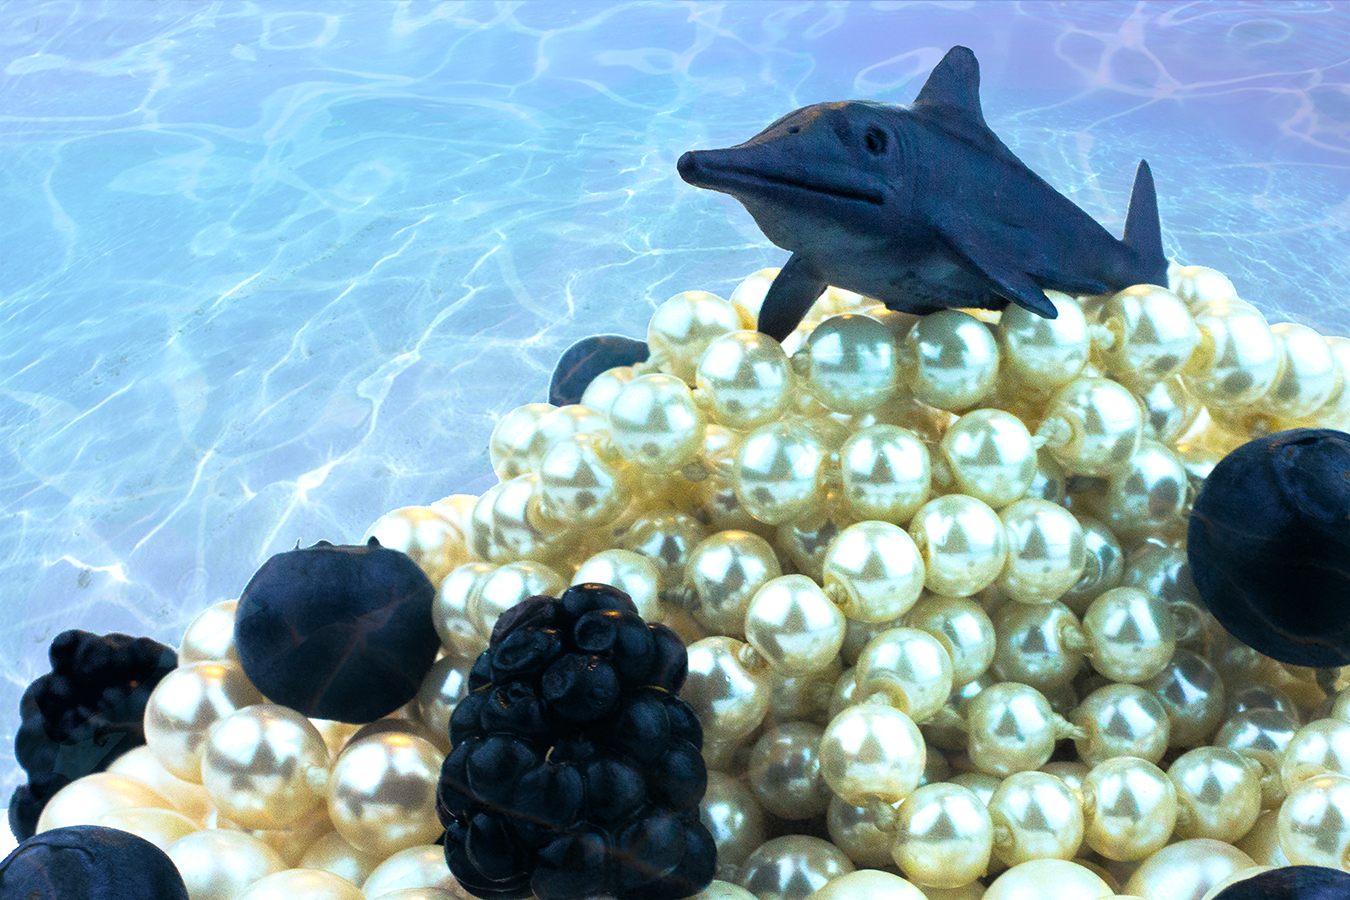 Victoria_Meng_Project2_Blue_Shark_Dinosaur_Pearls_Caviar_Underwater_Blueberries